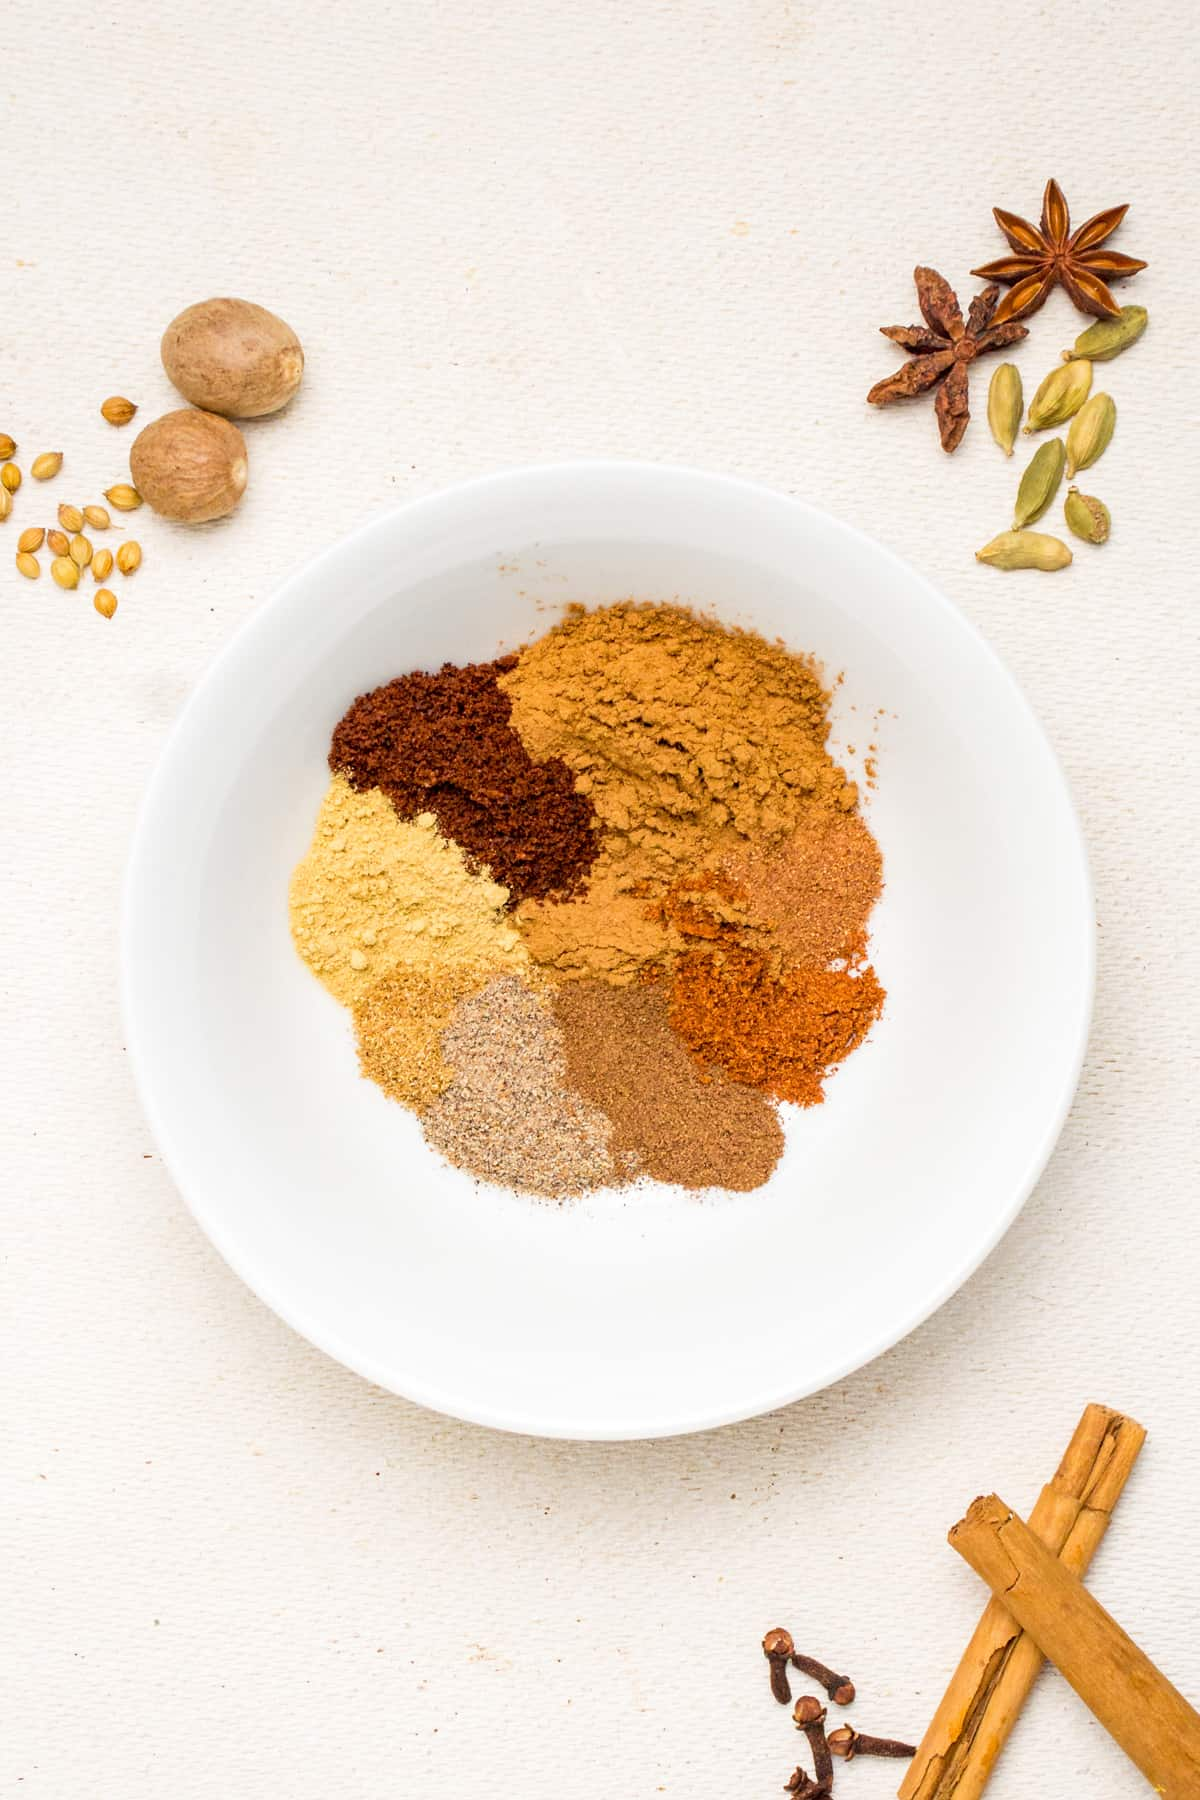 A white bowl of ground spices, whole spices on the surface around the bowl.